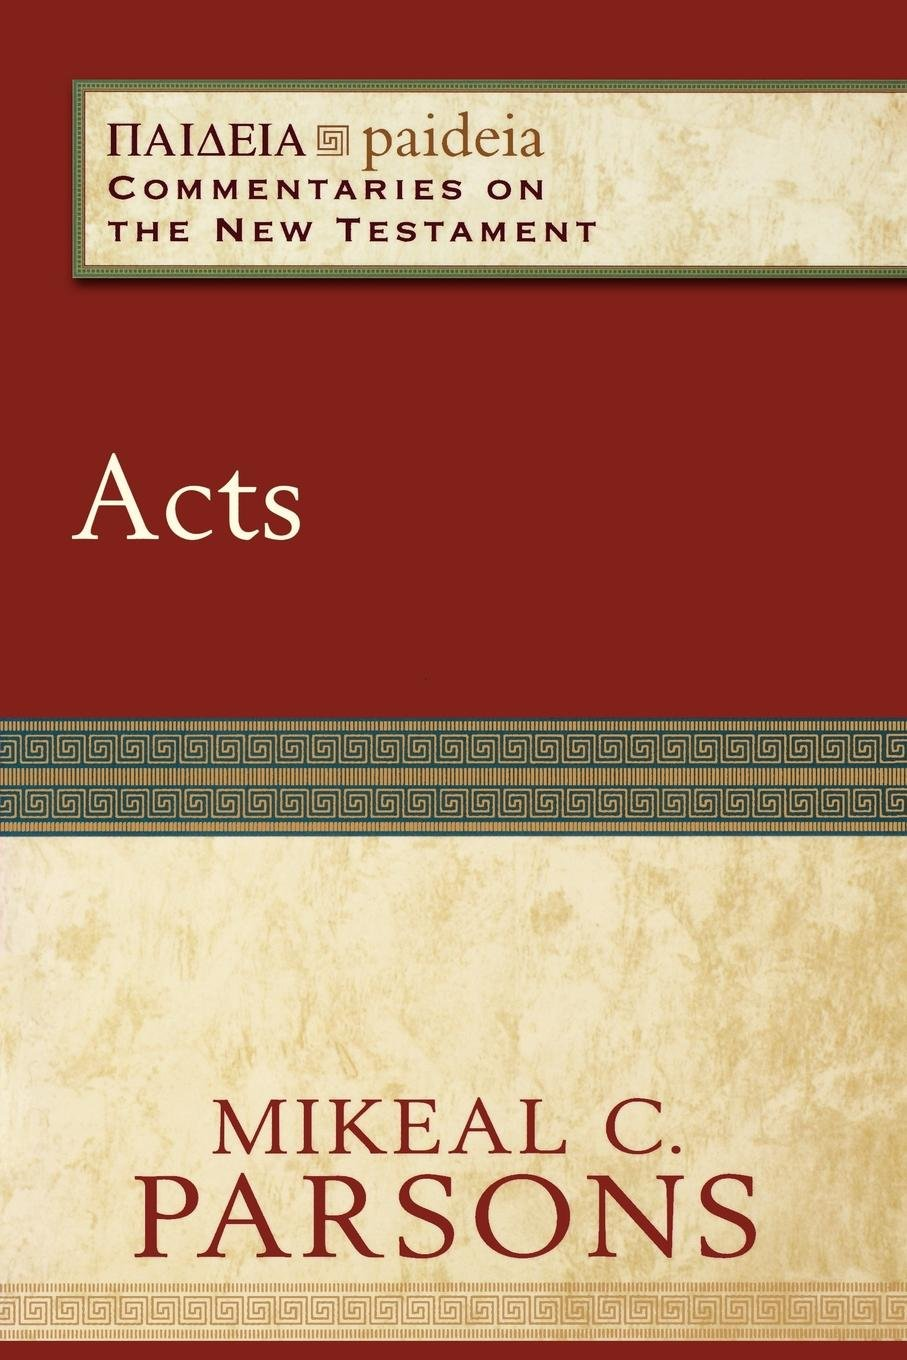 Acts (Paideia: Commentaries on the New Testament): Mikeal C. Parsons,  Mikeal Parsons, Charles Talbert: 9780801031885: Amazon.com: Books